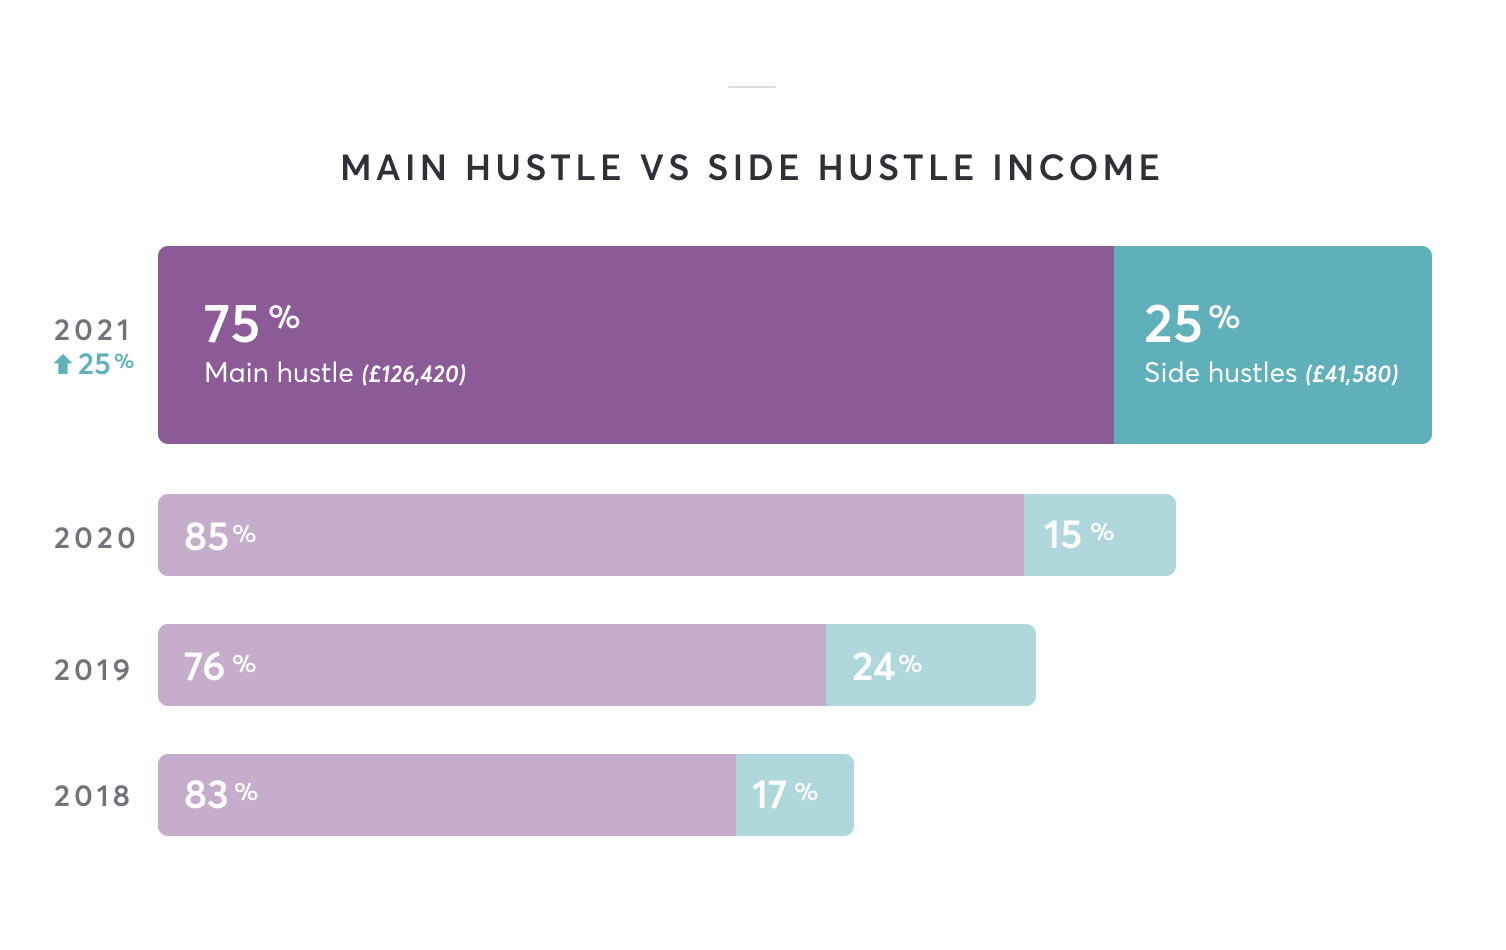 Main hustle income is 75% of total at £126,420. Side hustle income is 25% of total at £41,580. A 25% increase overall on last year